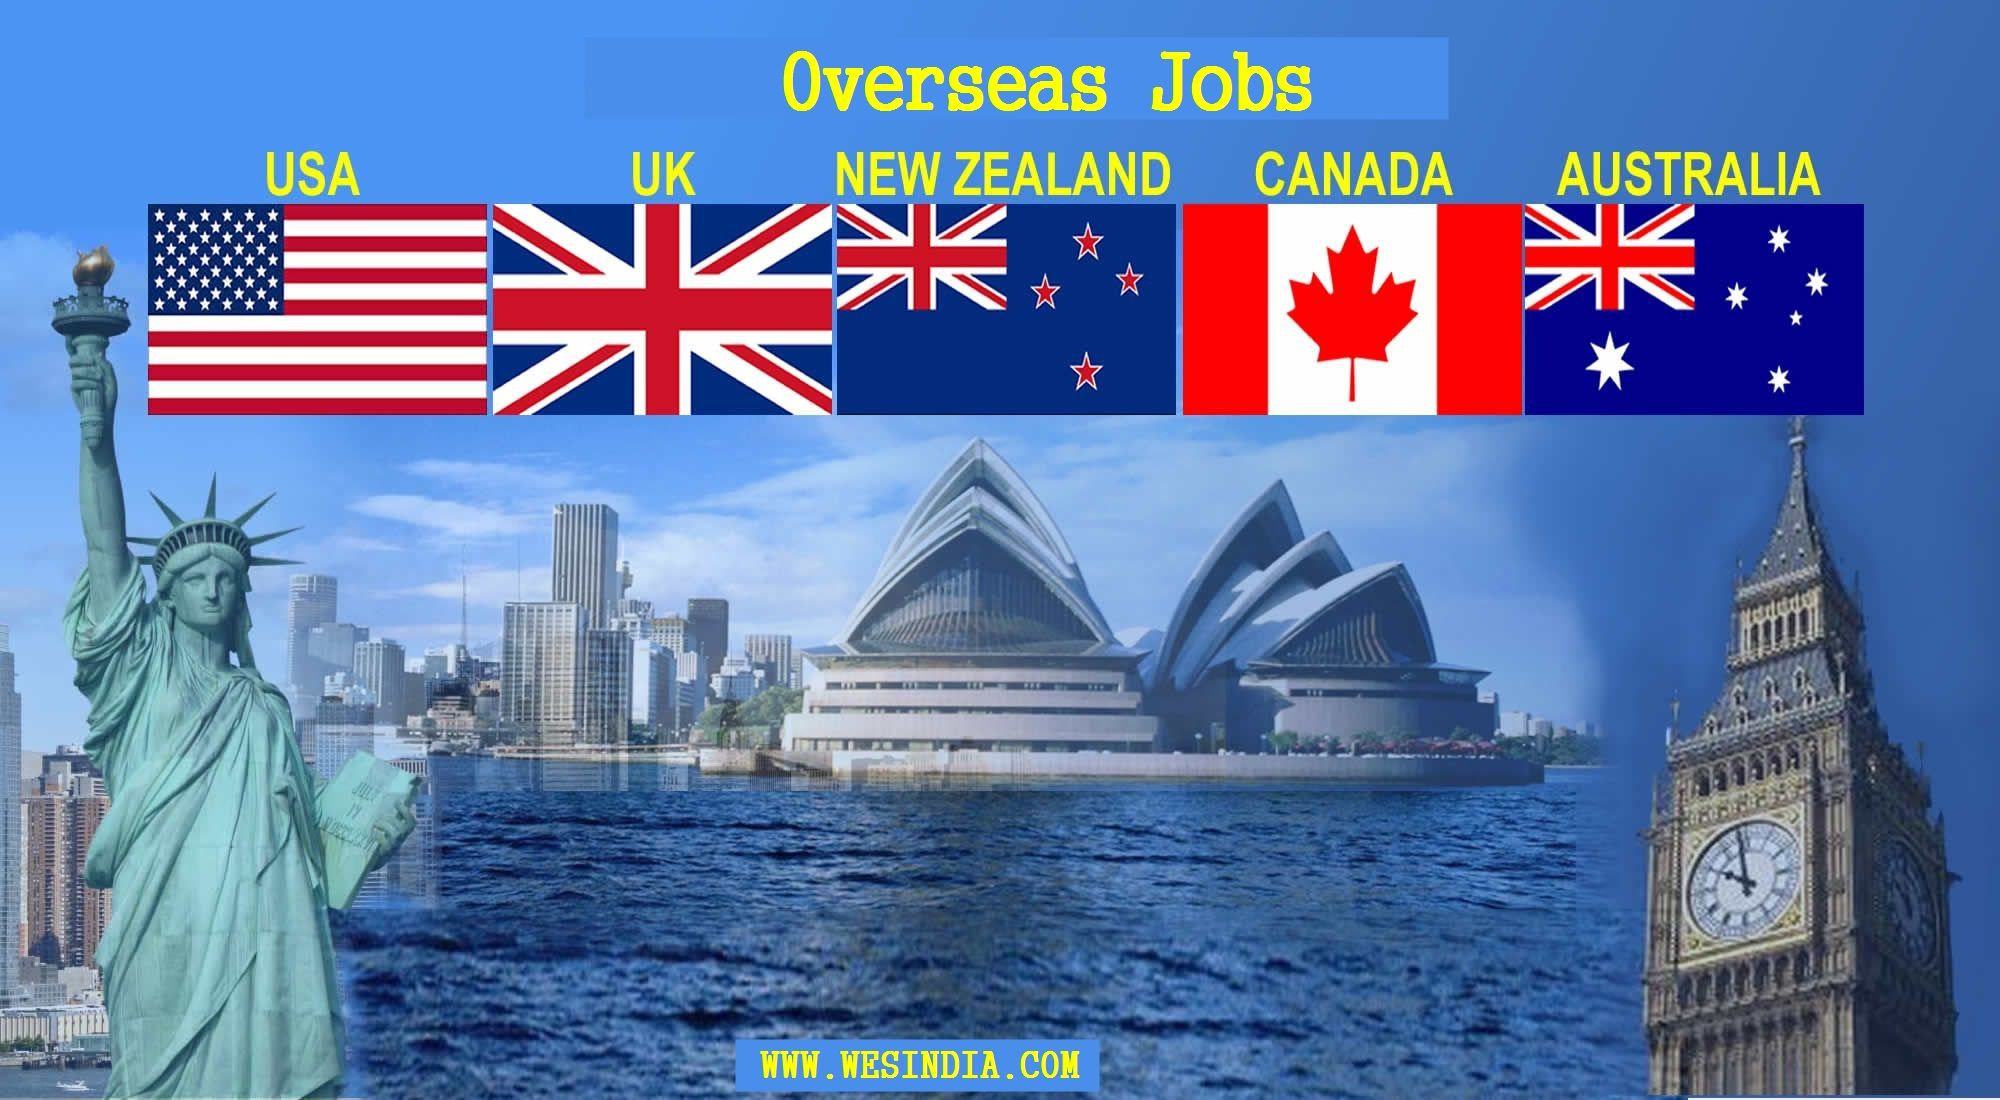 078b9090305efcff7f3954073c6fdebe - How To Get A Visa For Usa From Australia